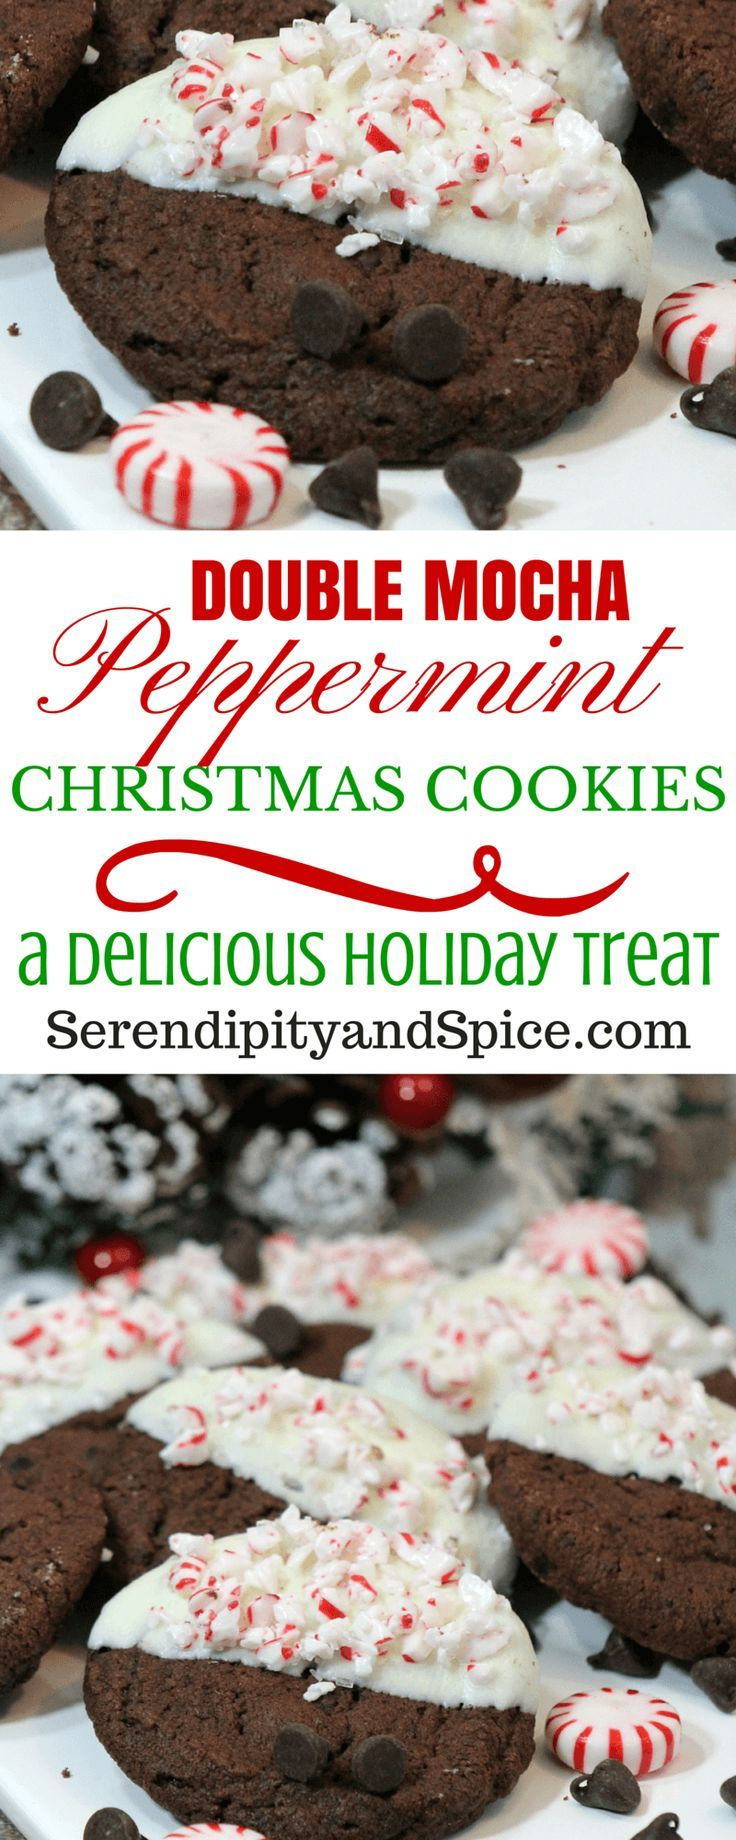 Double Chocolate Mocha Peppermint Cookie Recipe...the perfect cookie for Santa! Christmas Cookie Recipe - Cookie Exchange - Gift Giving - Chocolate - Dessert - Easy Baking - Baking with Kids - Holiday Treat